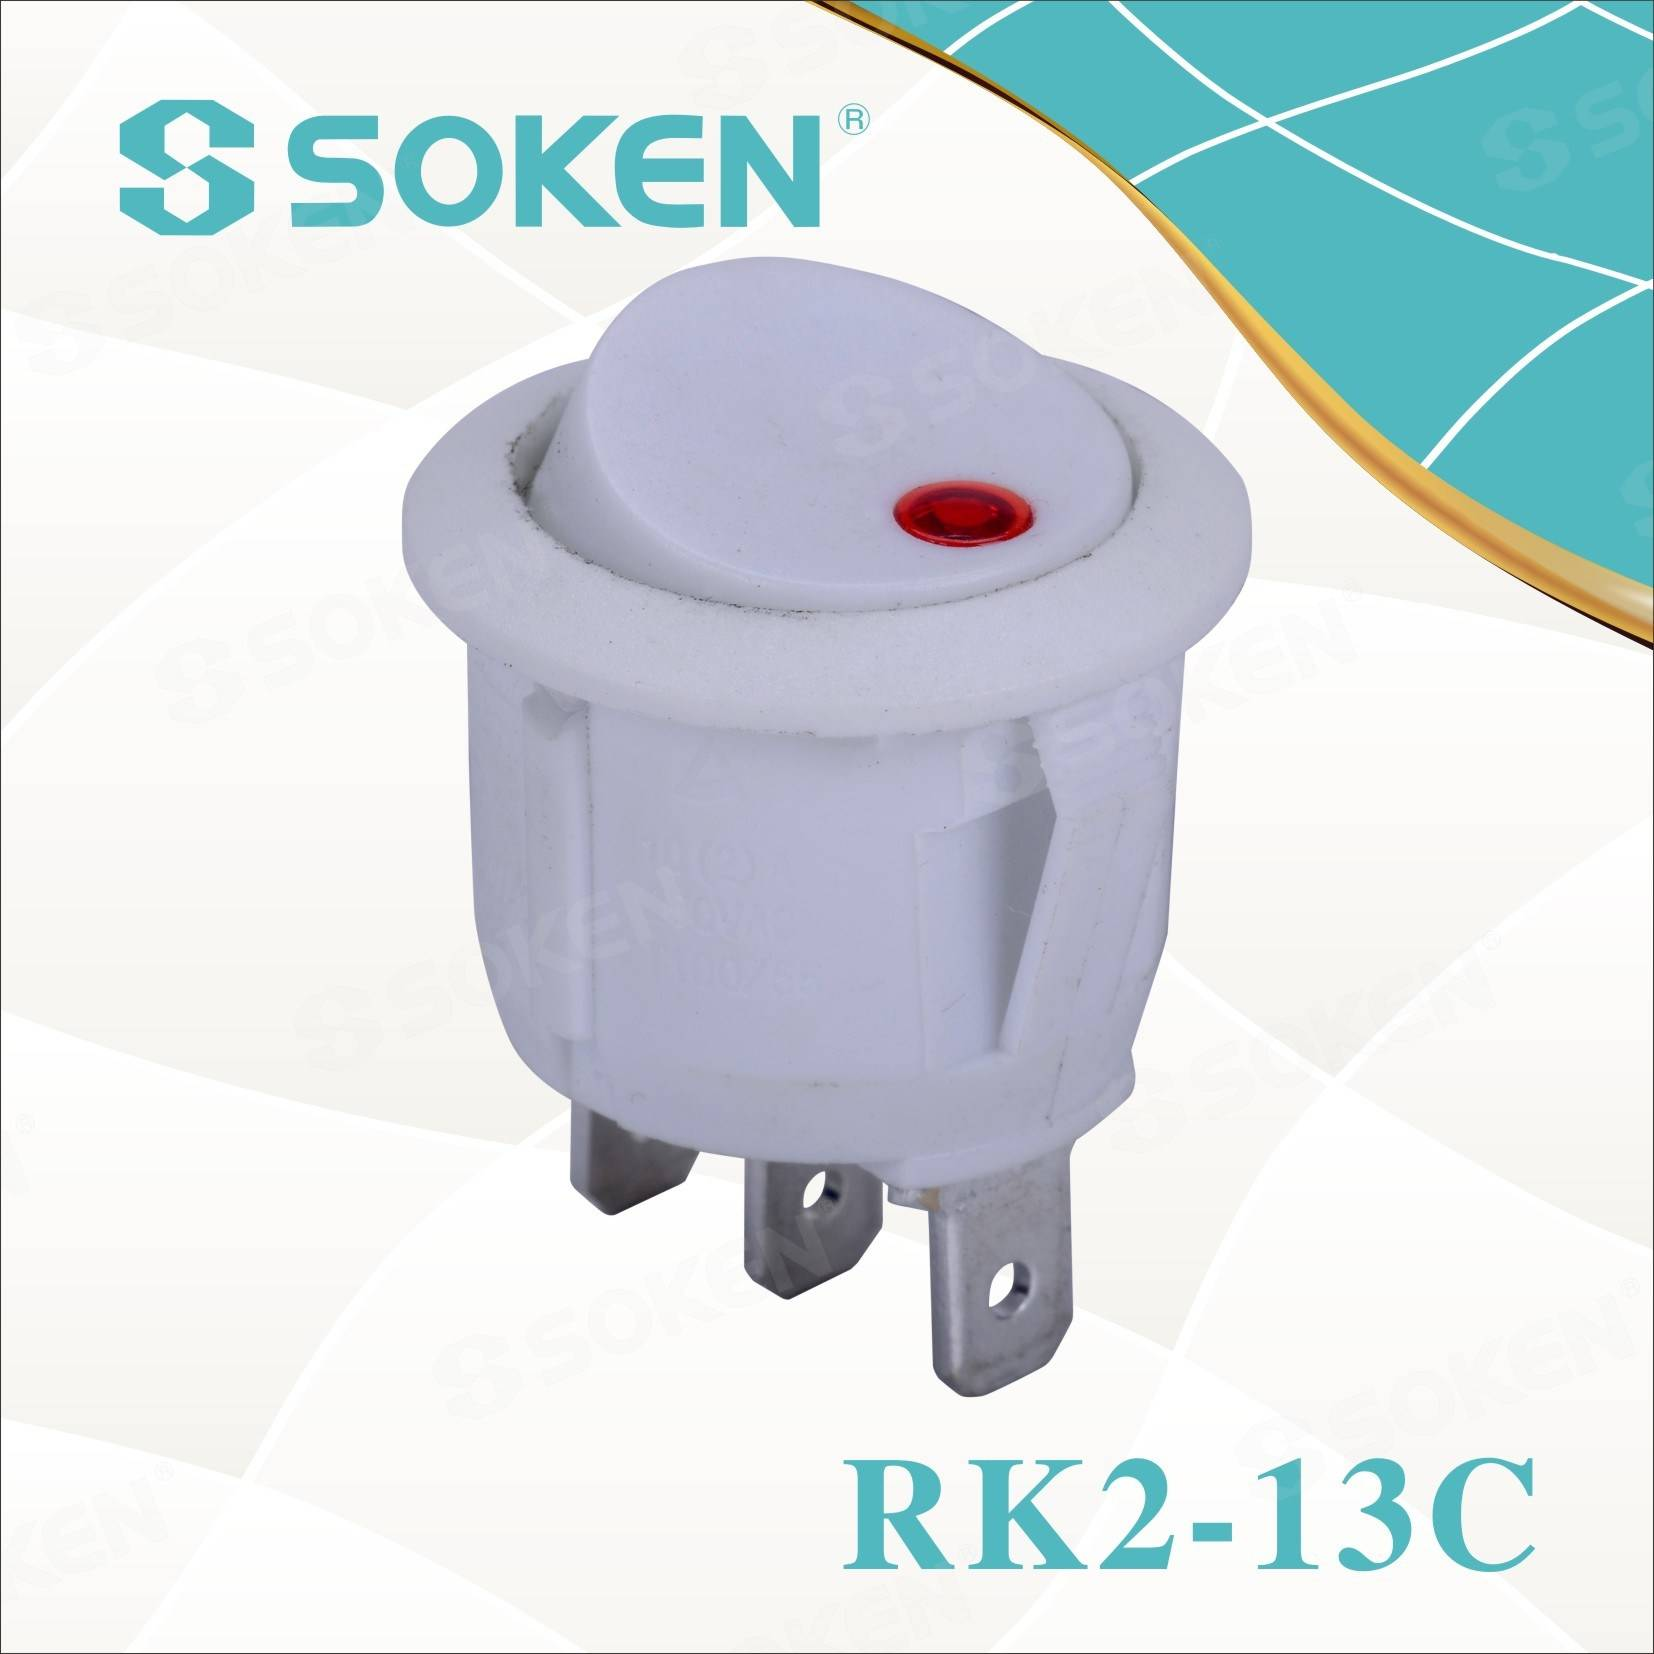 Special Design for Lighted Rocker Switch -